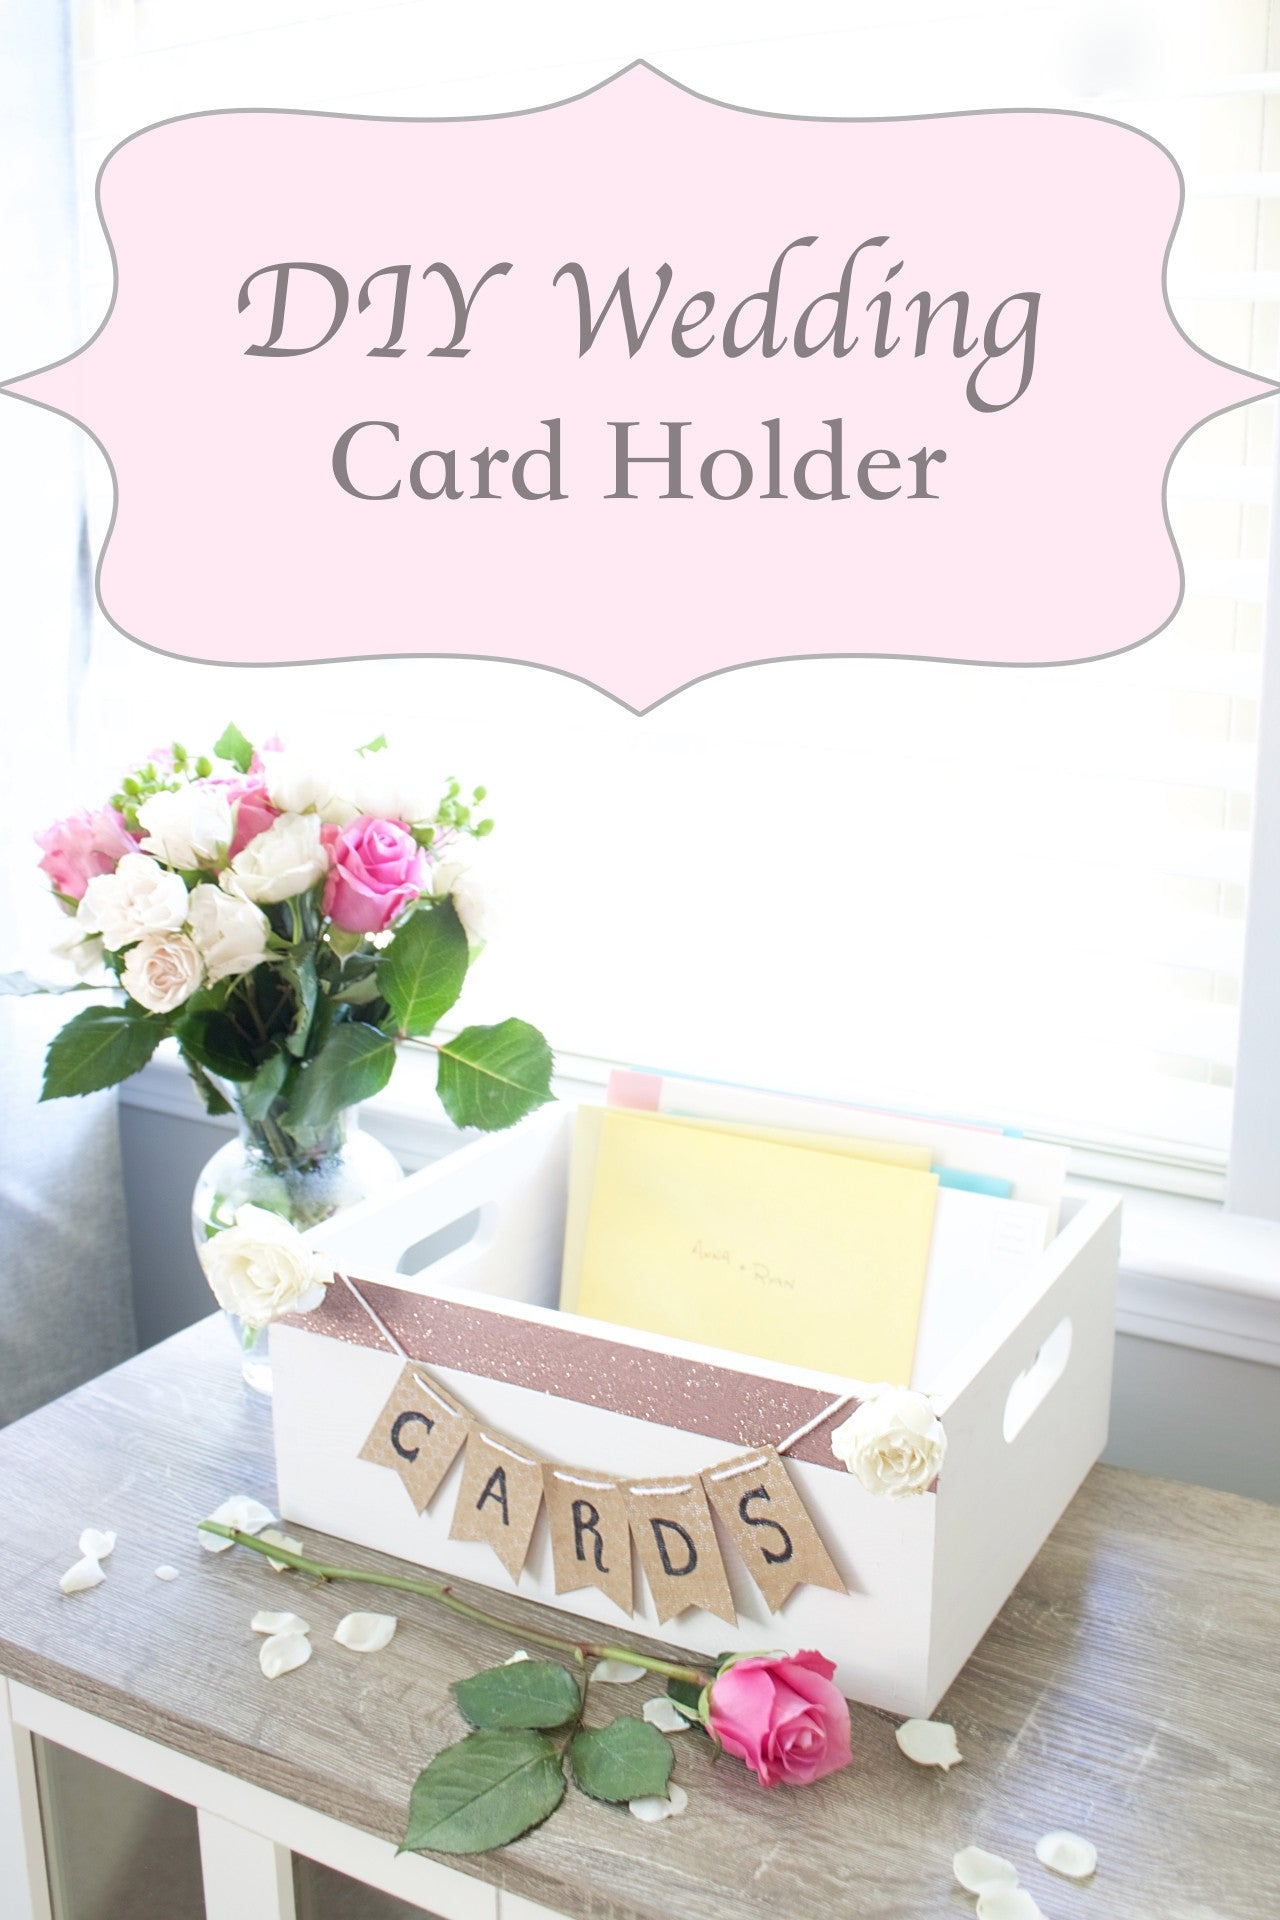 DIY Wedding Card Holder